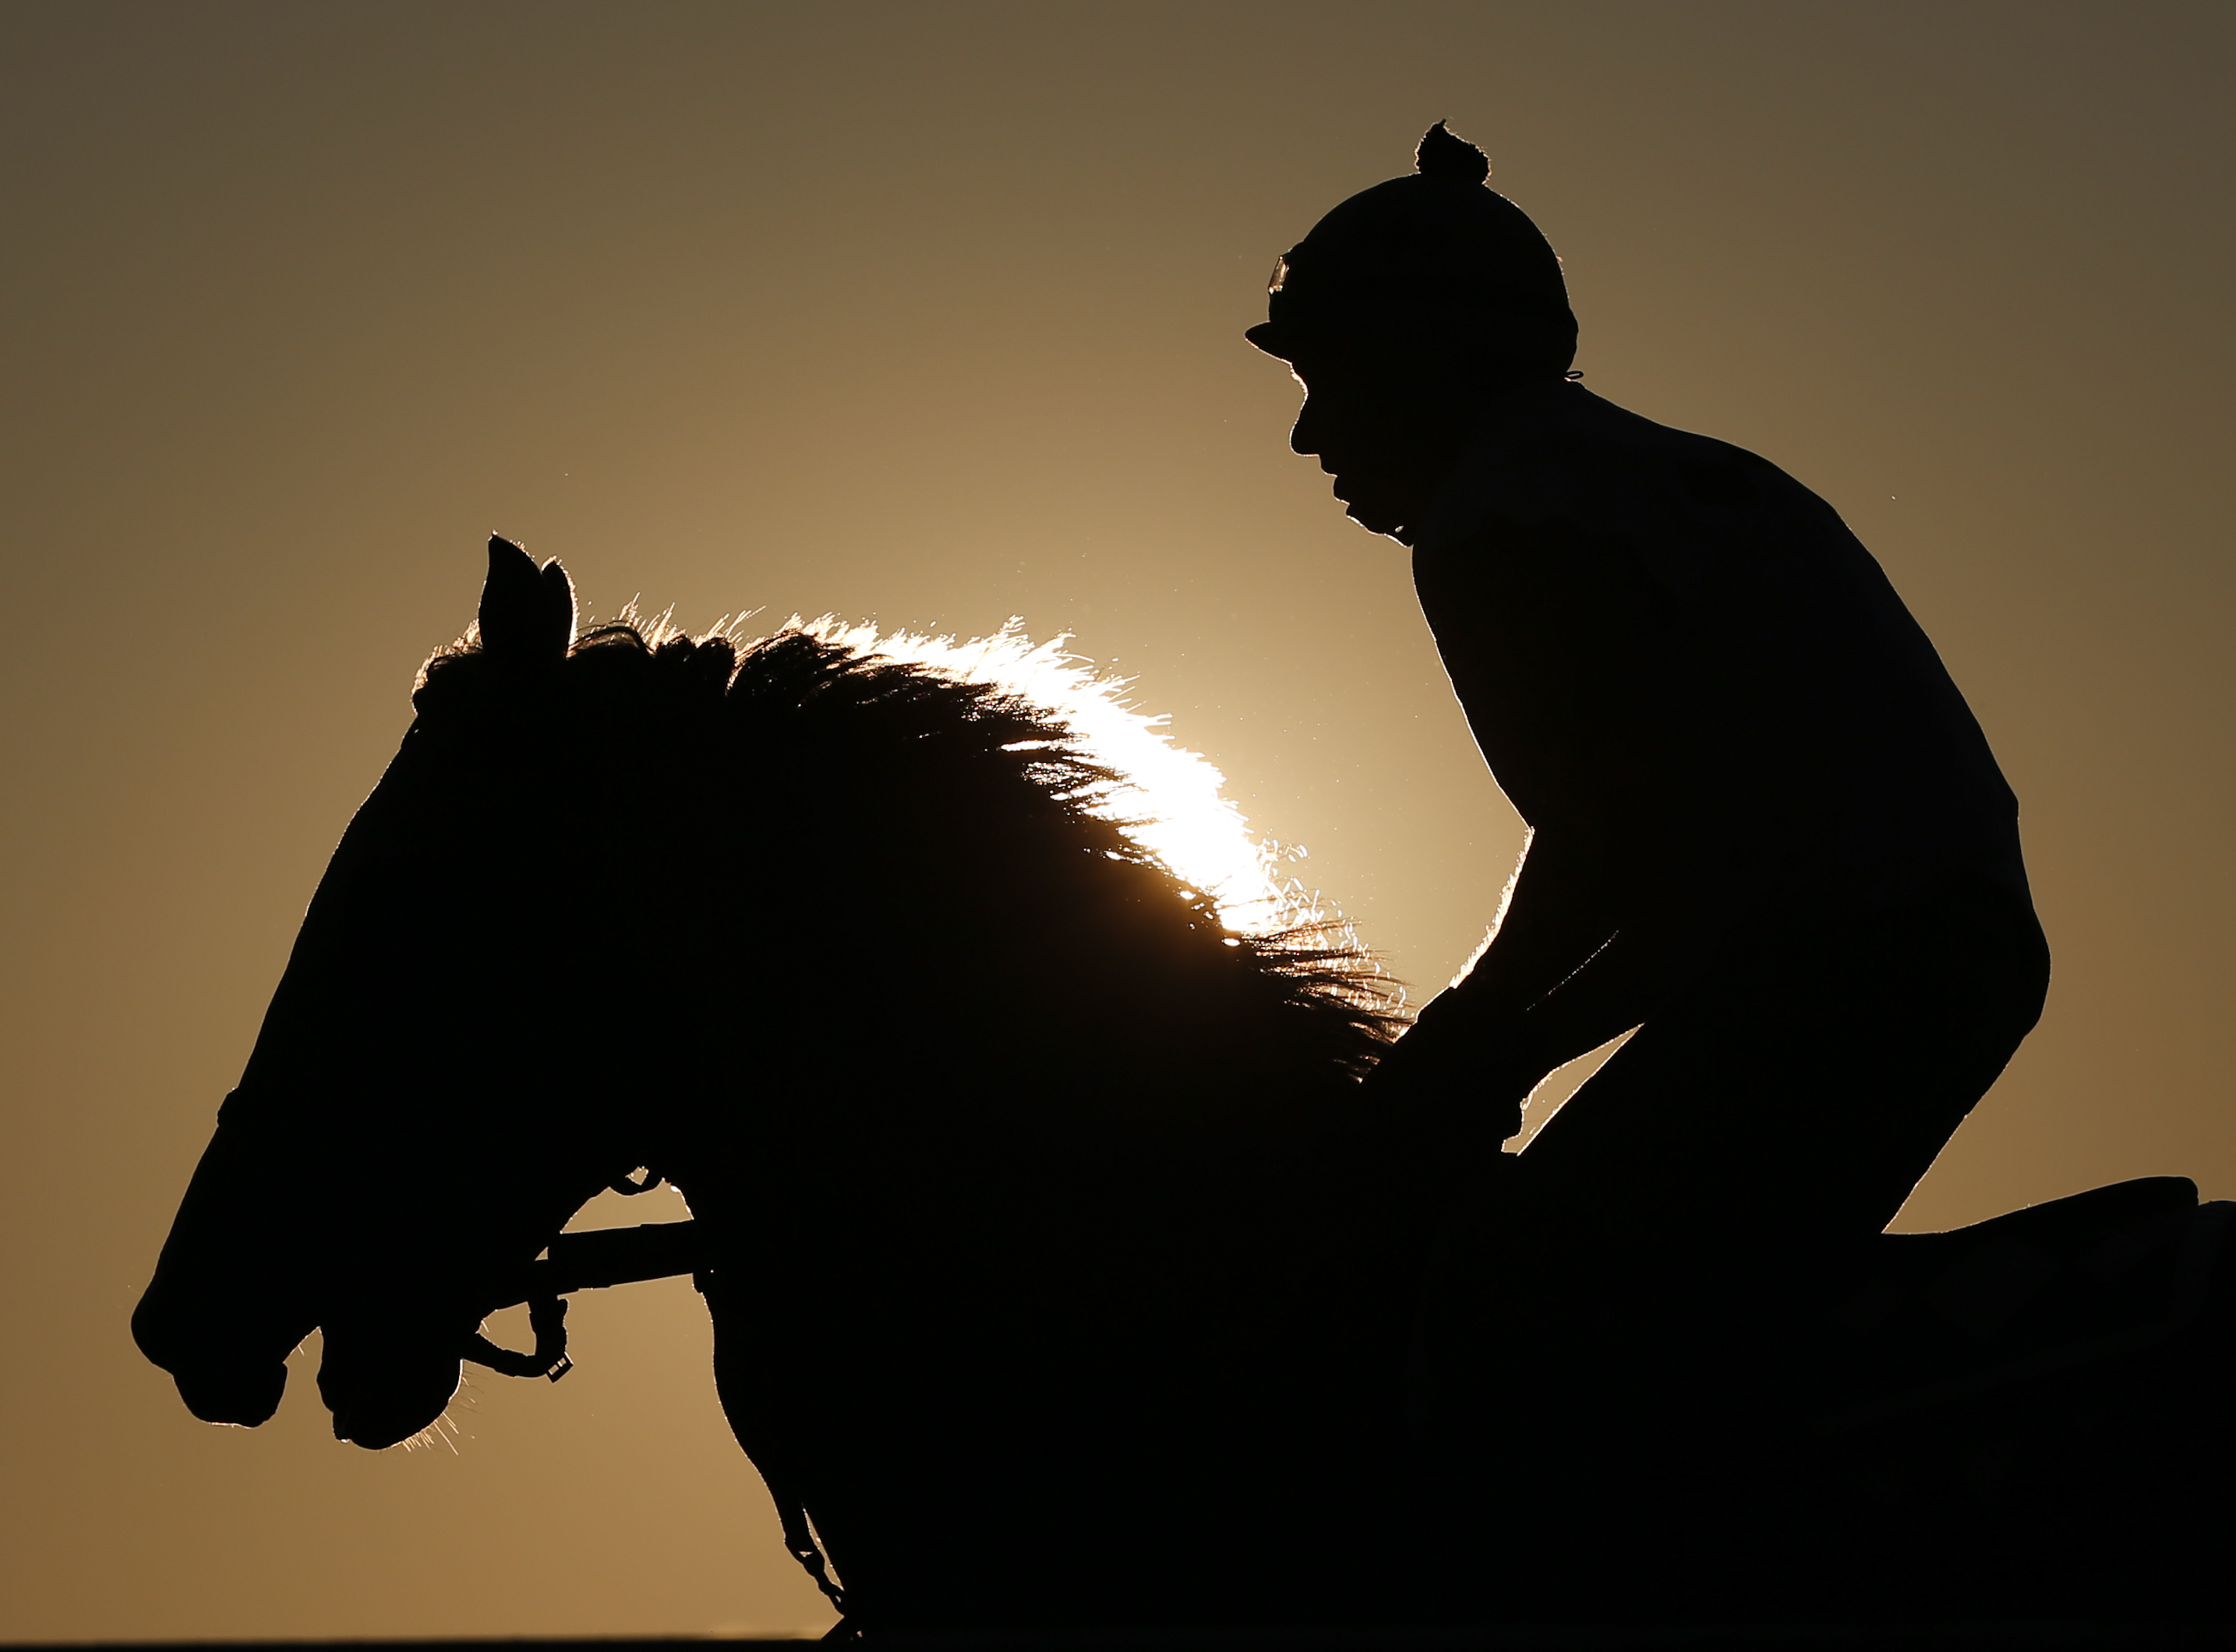 An exercise rider takes a horse for a morning workout at Saratoga Race Course on Thursday, July 23, 2015, in Saratoga Springs, N.Y. Saratoga kicks off its 147th summer of thoroughbred racing on Friday.  (AP Photo/Mike Groll)